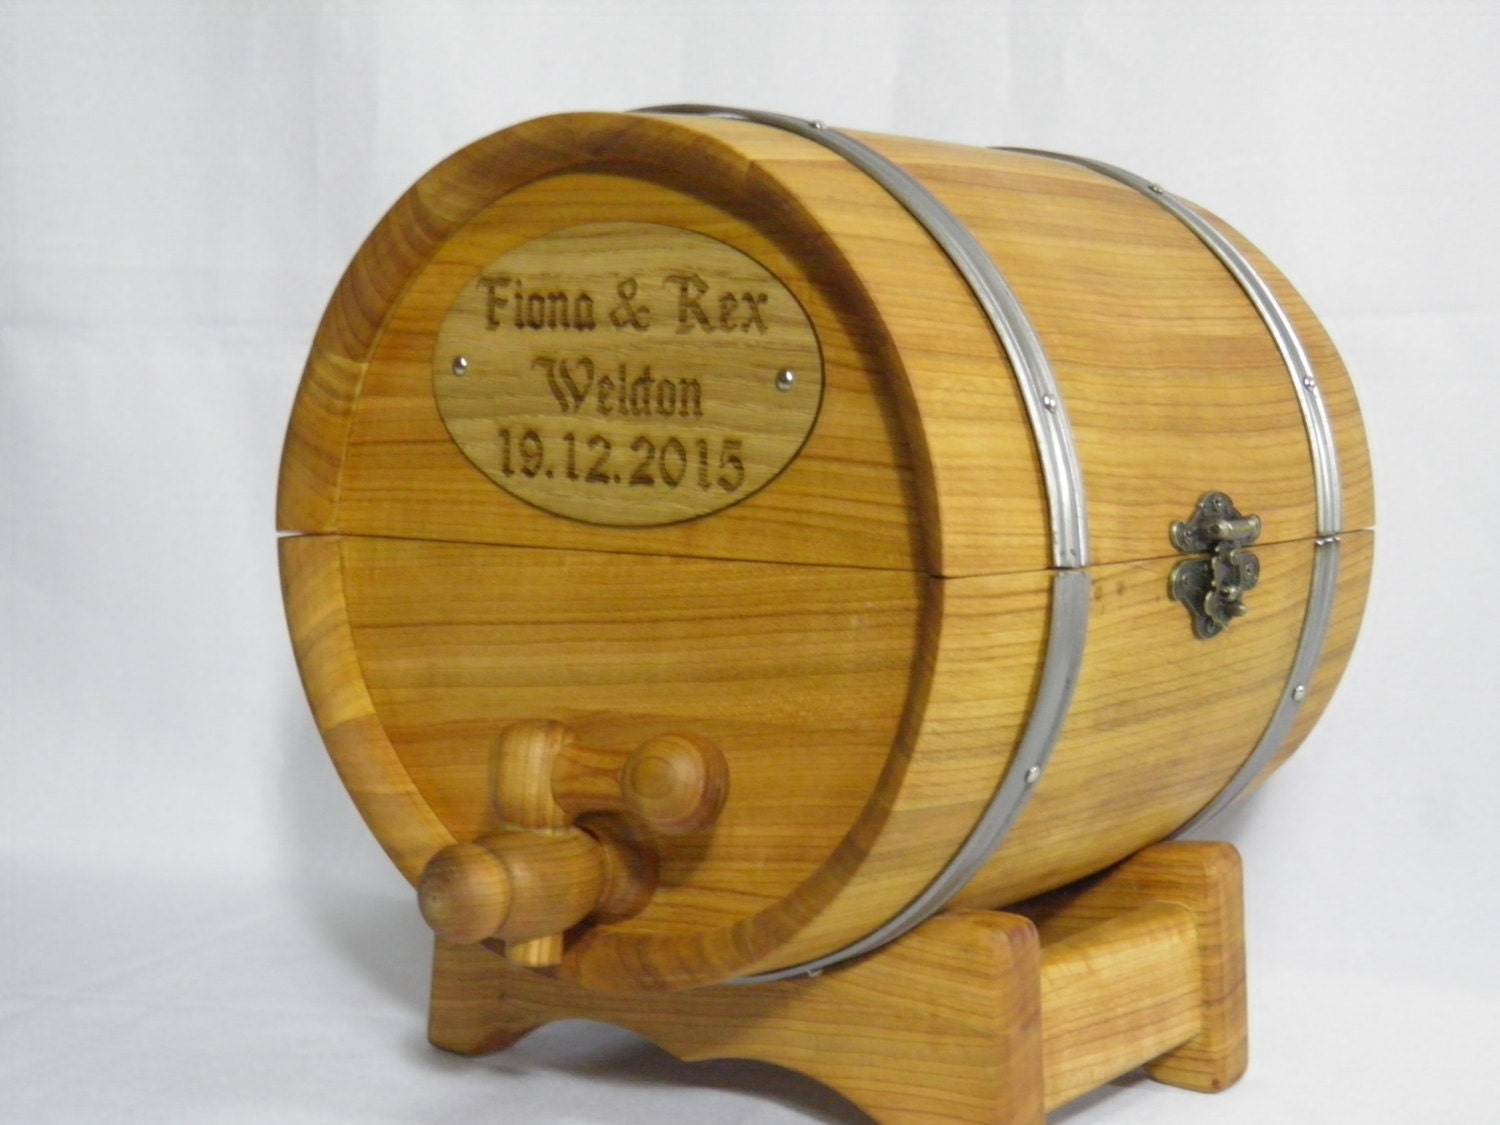 Cork, Paper Funnel, Barrel Wax, and Instruction Card with link to our Personalized Wedding Barrel Card Holder. by THOUSAND OAKS BARREL. $ $ FREE Shipping on eligible orders. 5 out of 5 stars 1. Product Features Personalized Wedding Barrel Card Holder.